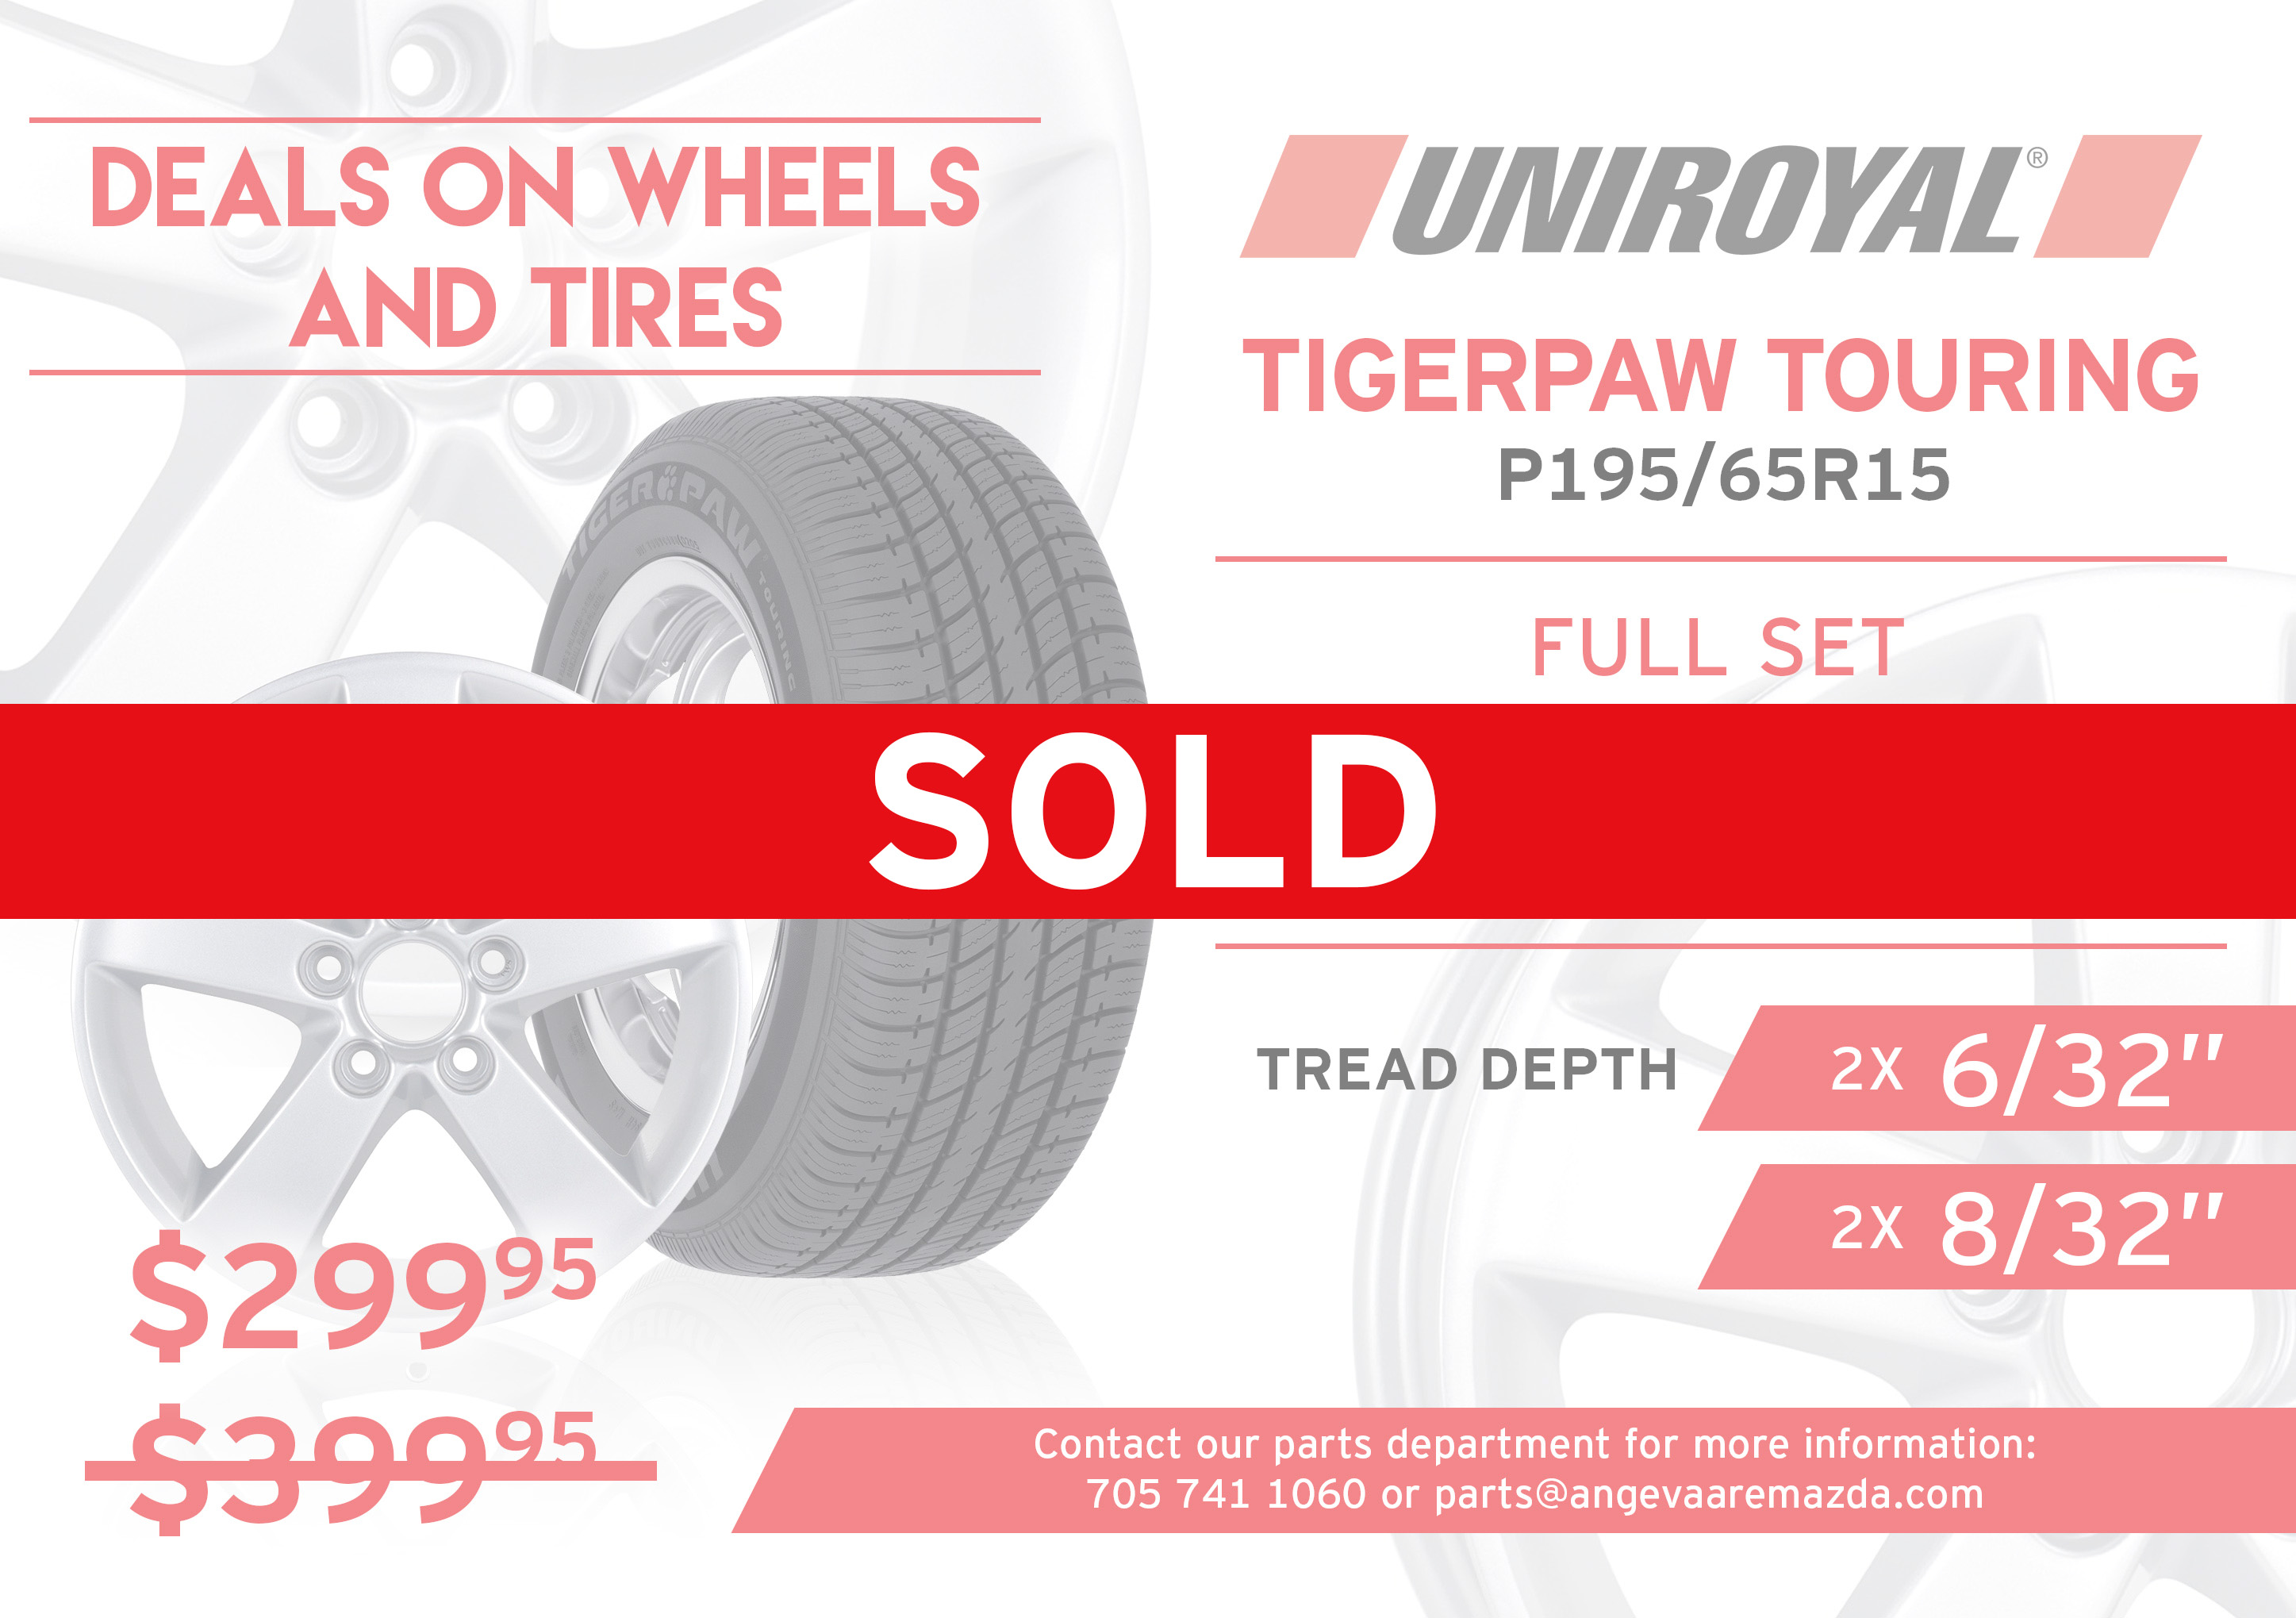 Uniroyal Tiger Touring tires P195/65R15. A full set of used 15